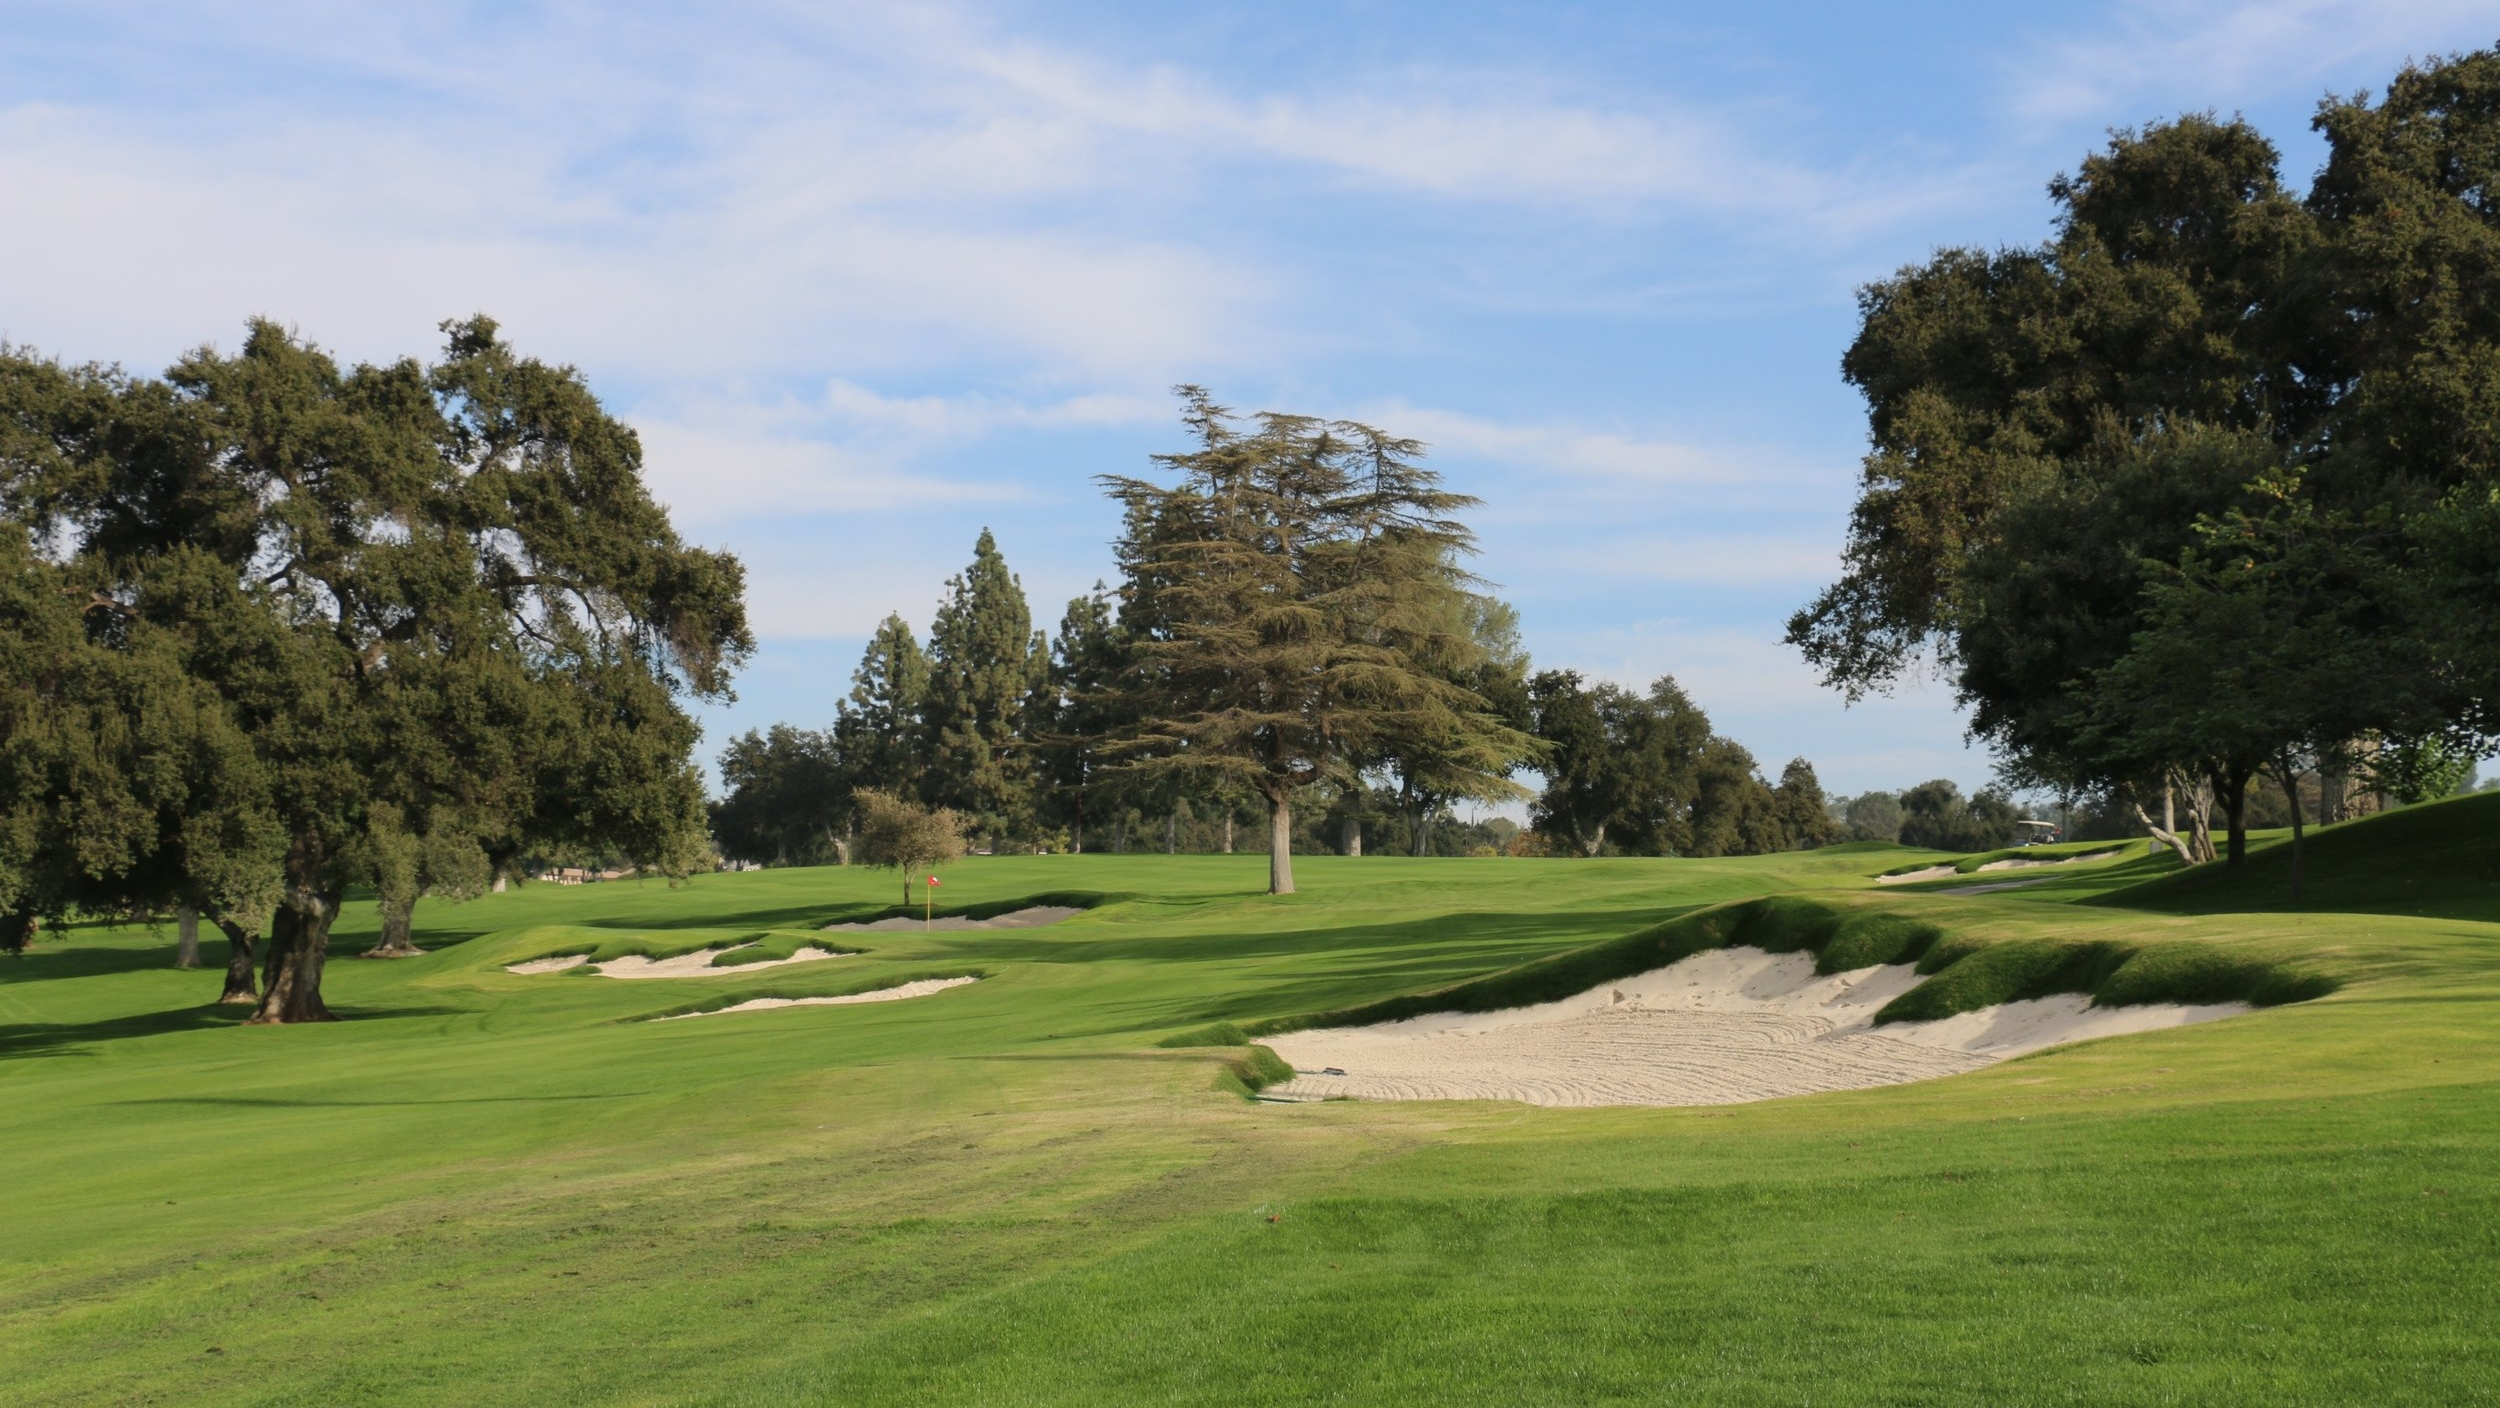 The ideal angle into the 1st green at Redlands is from over here.  Image courtesy of Todd Eckenrode, Origins Golf Design